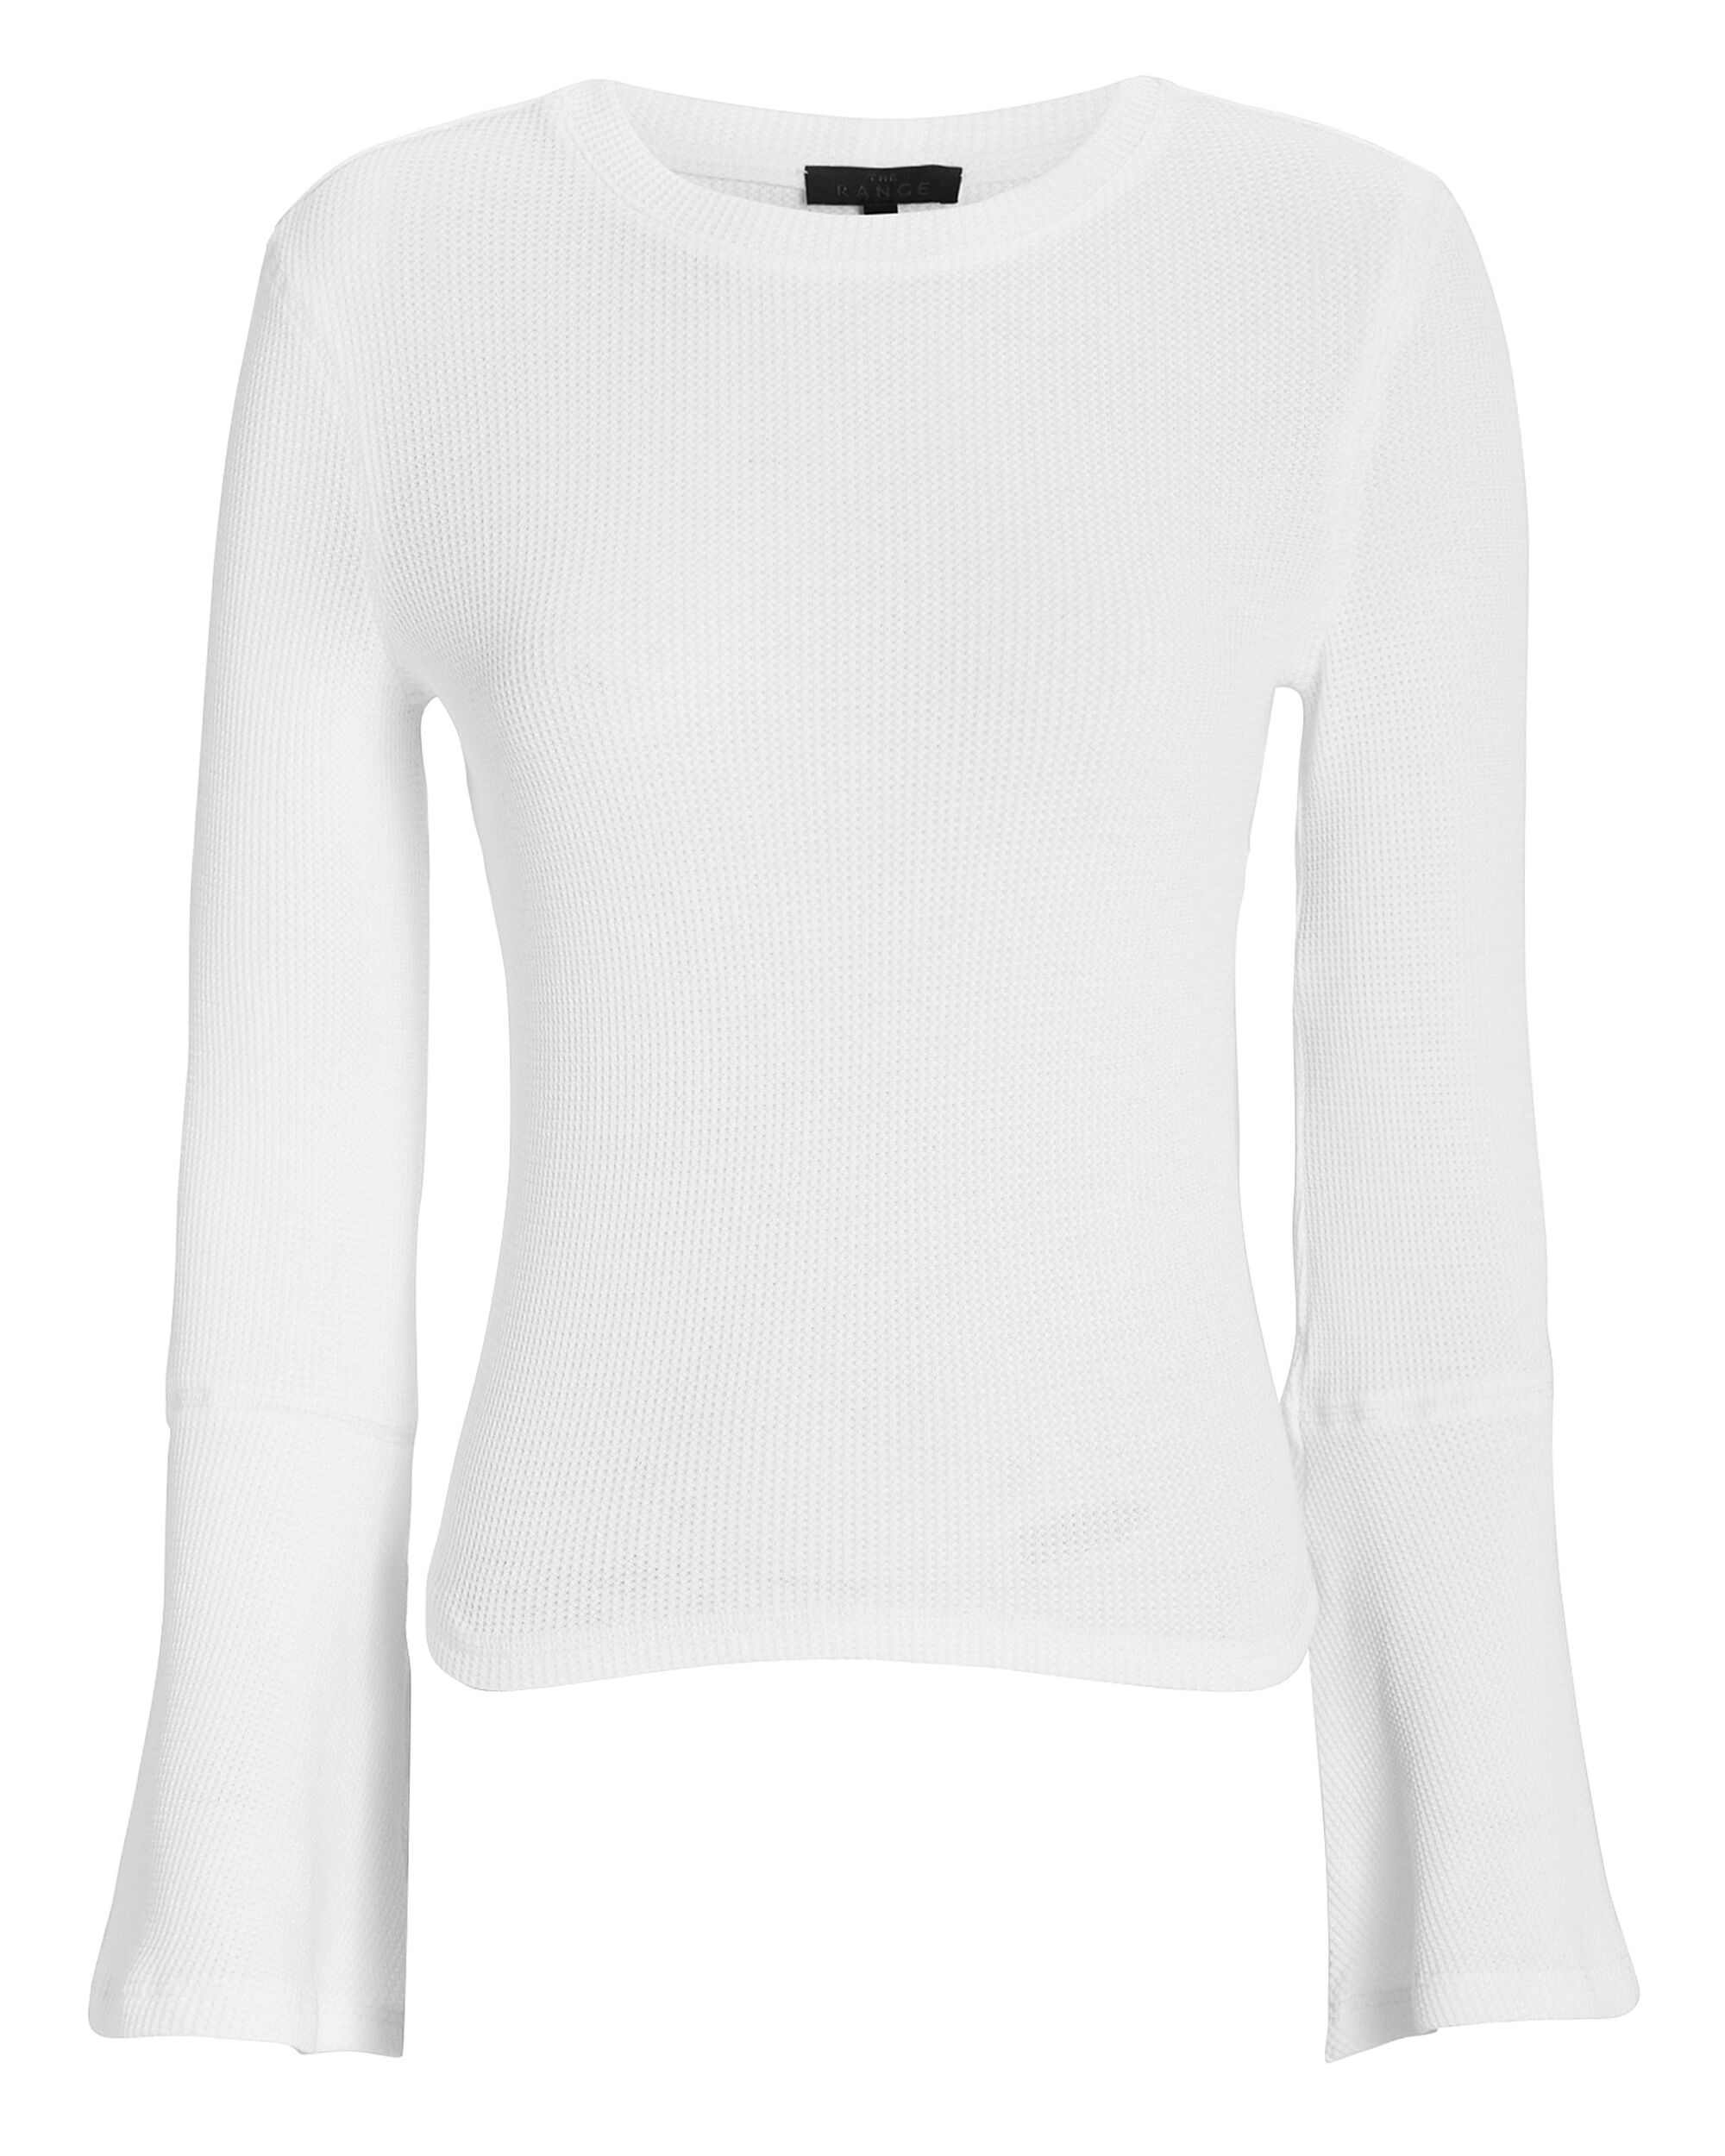 Flare Sleeve Knit Sweater, WHITE, hi-res